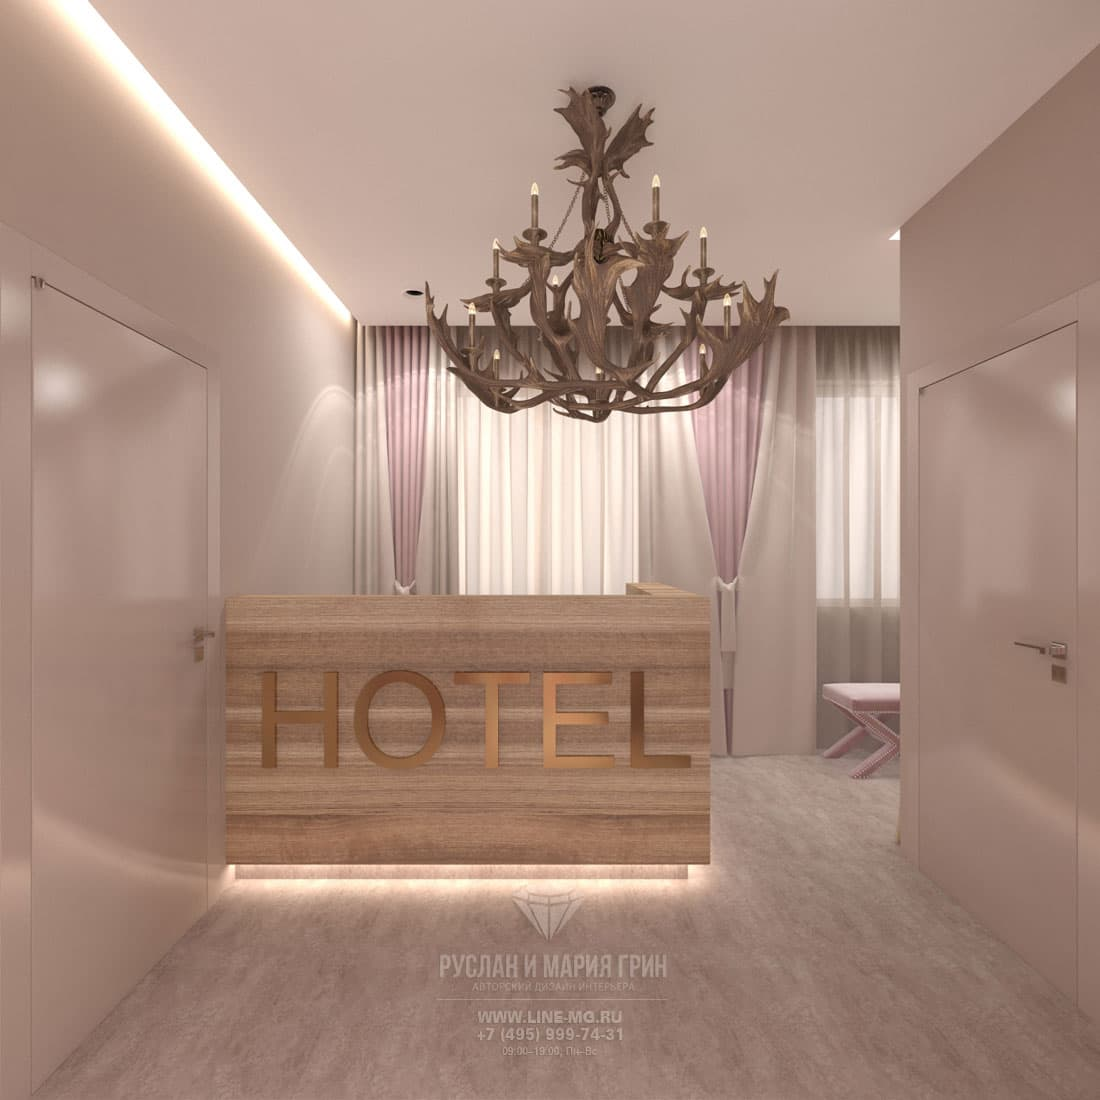 Reception of apart-hotel